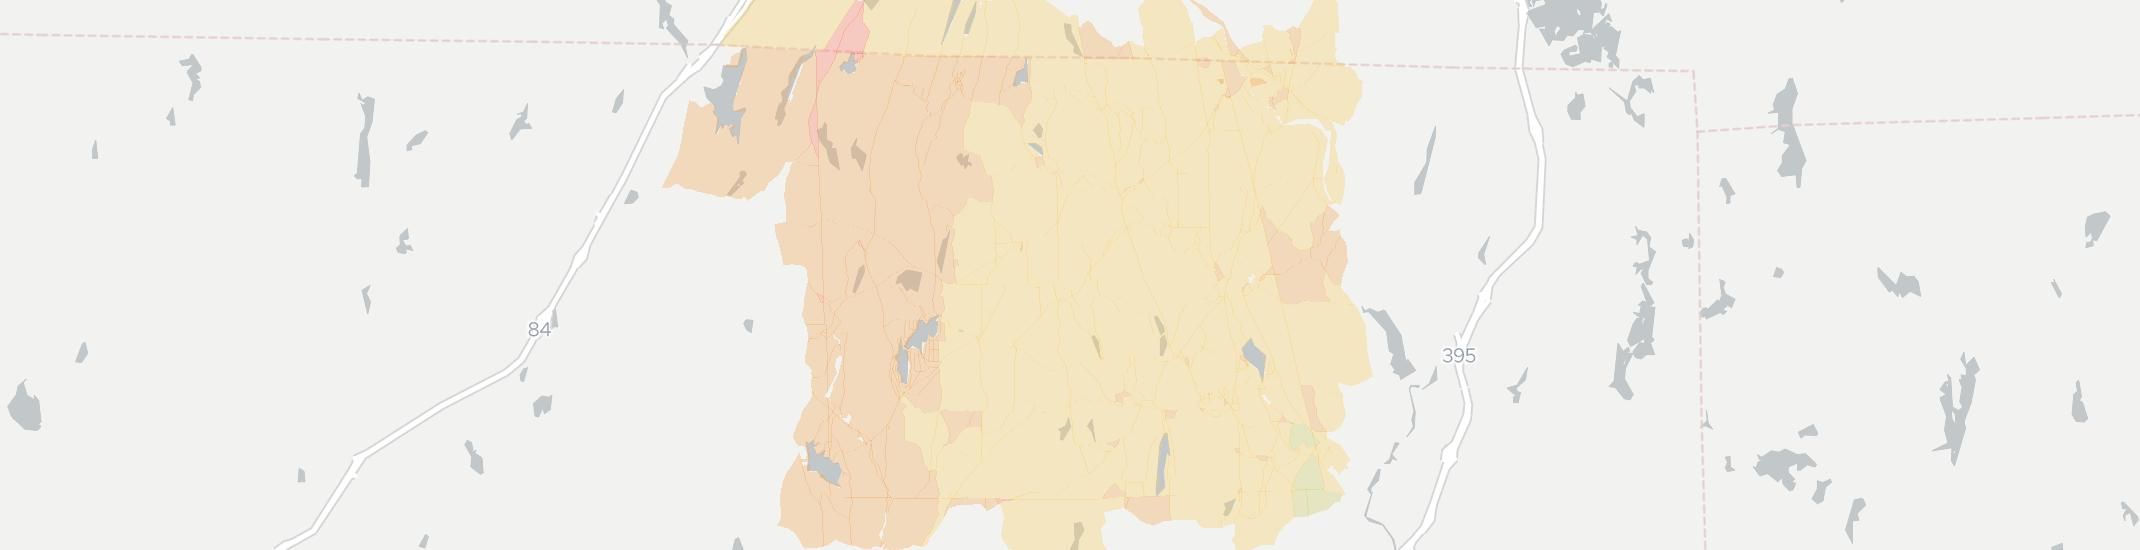 Woodstock Internet Competition Map. Click for interactive map.